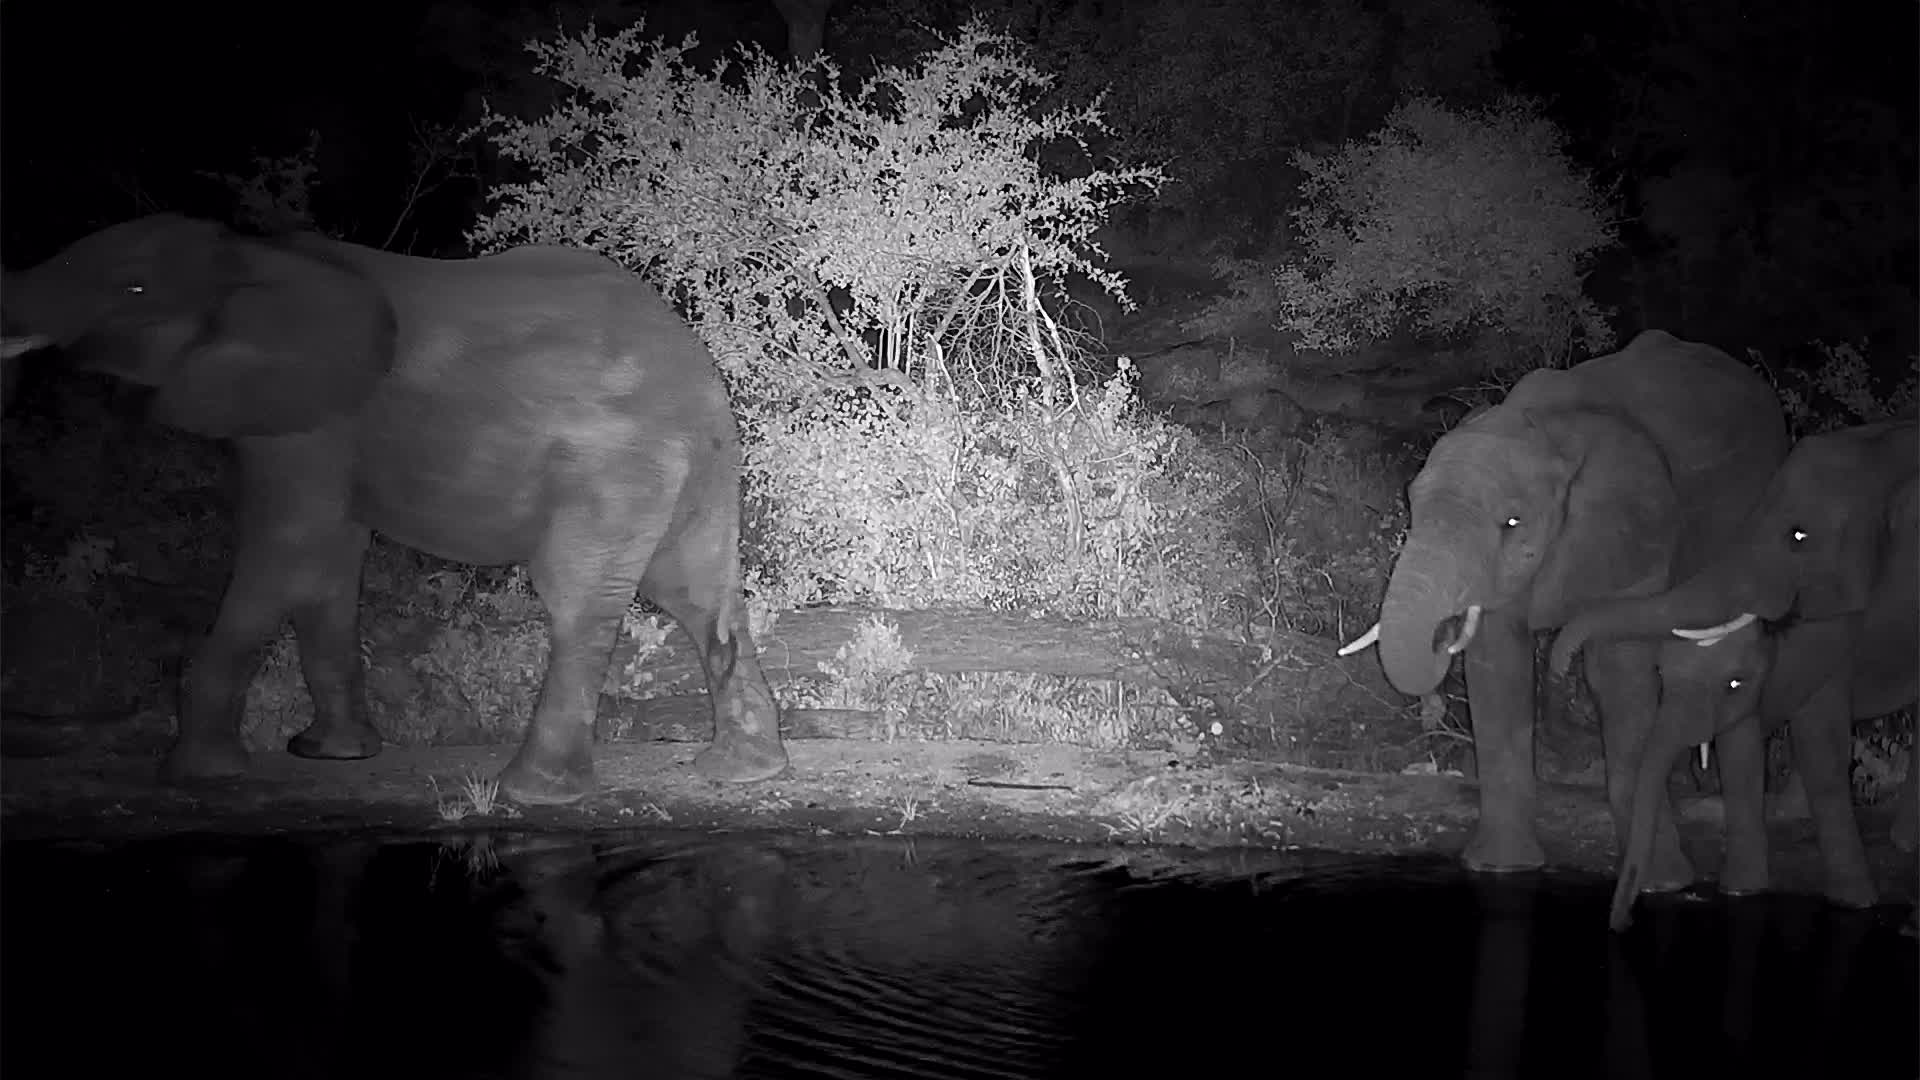 VIDEO: Elephants drinking and young bulls wrangling